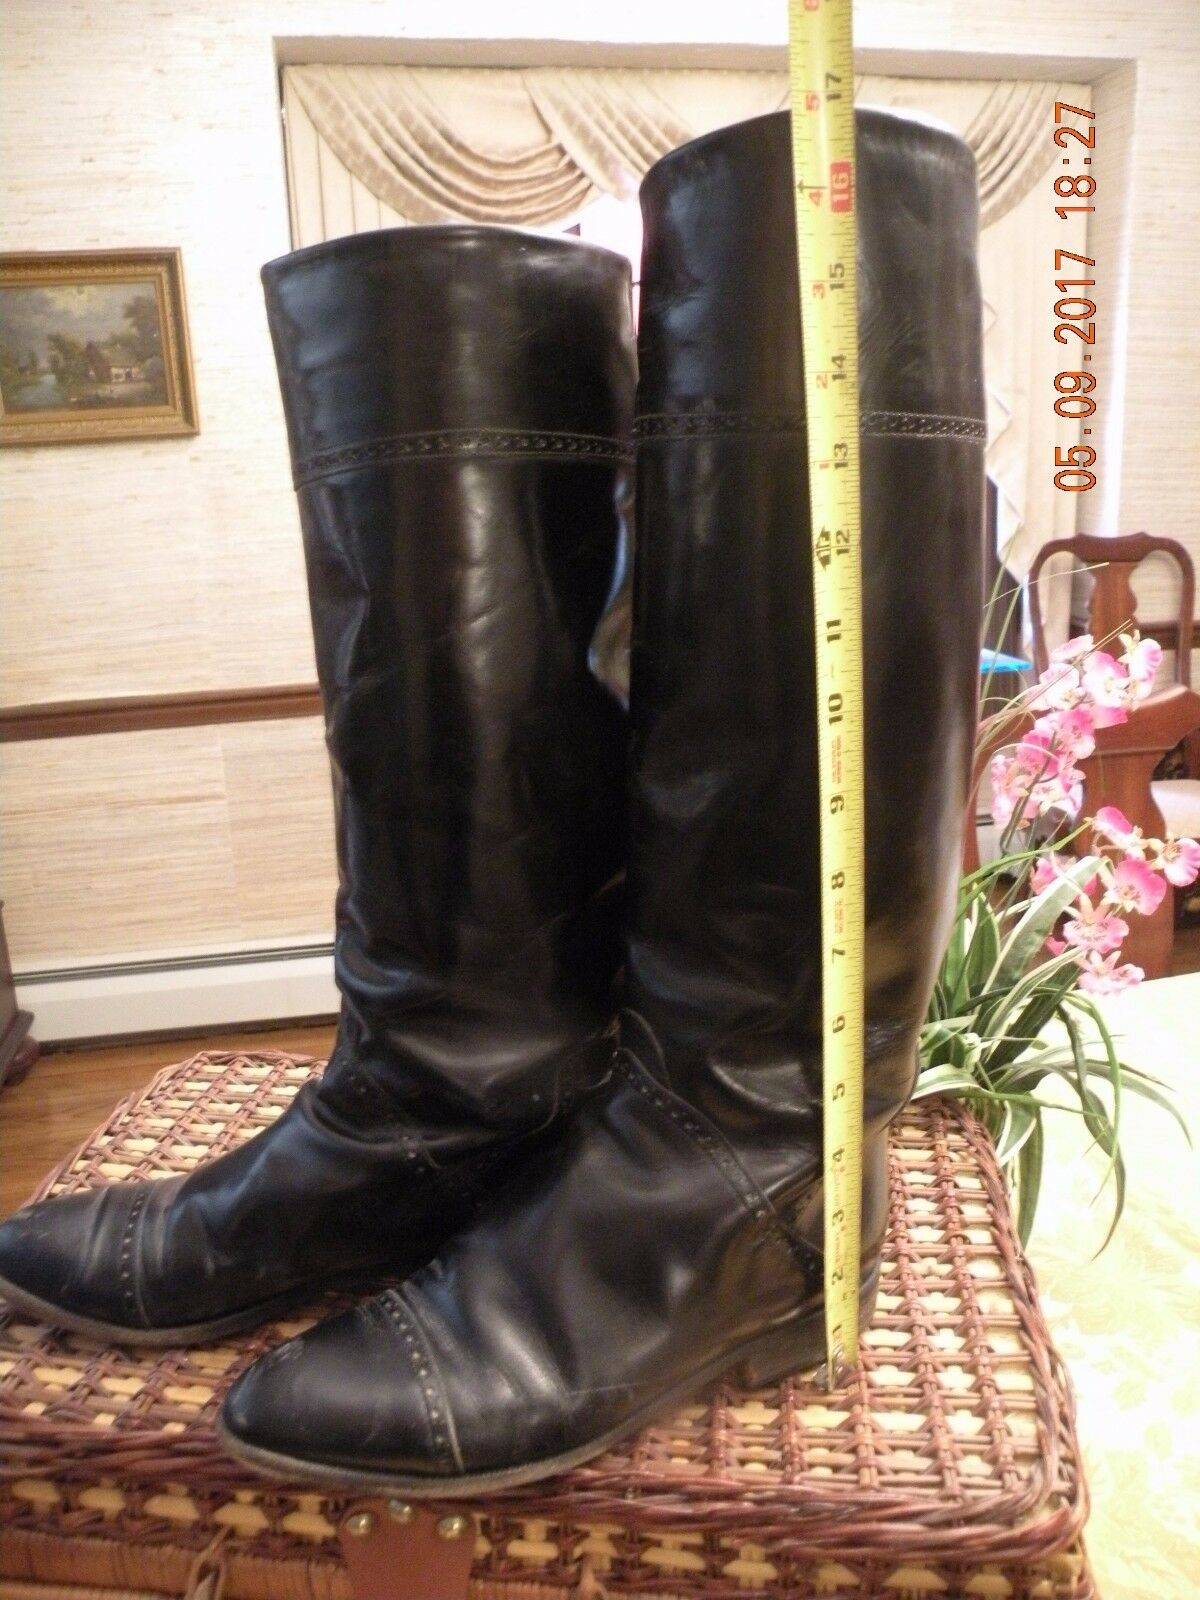 Vintage Classic Italian Leather Charles David Riding Boots  - 1980's 8.5 B